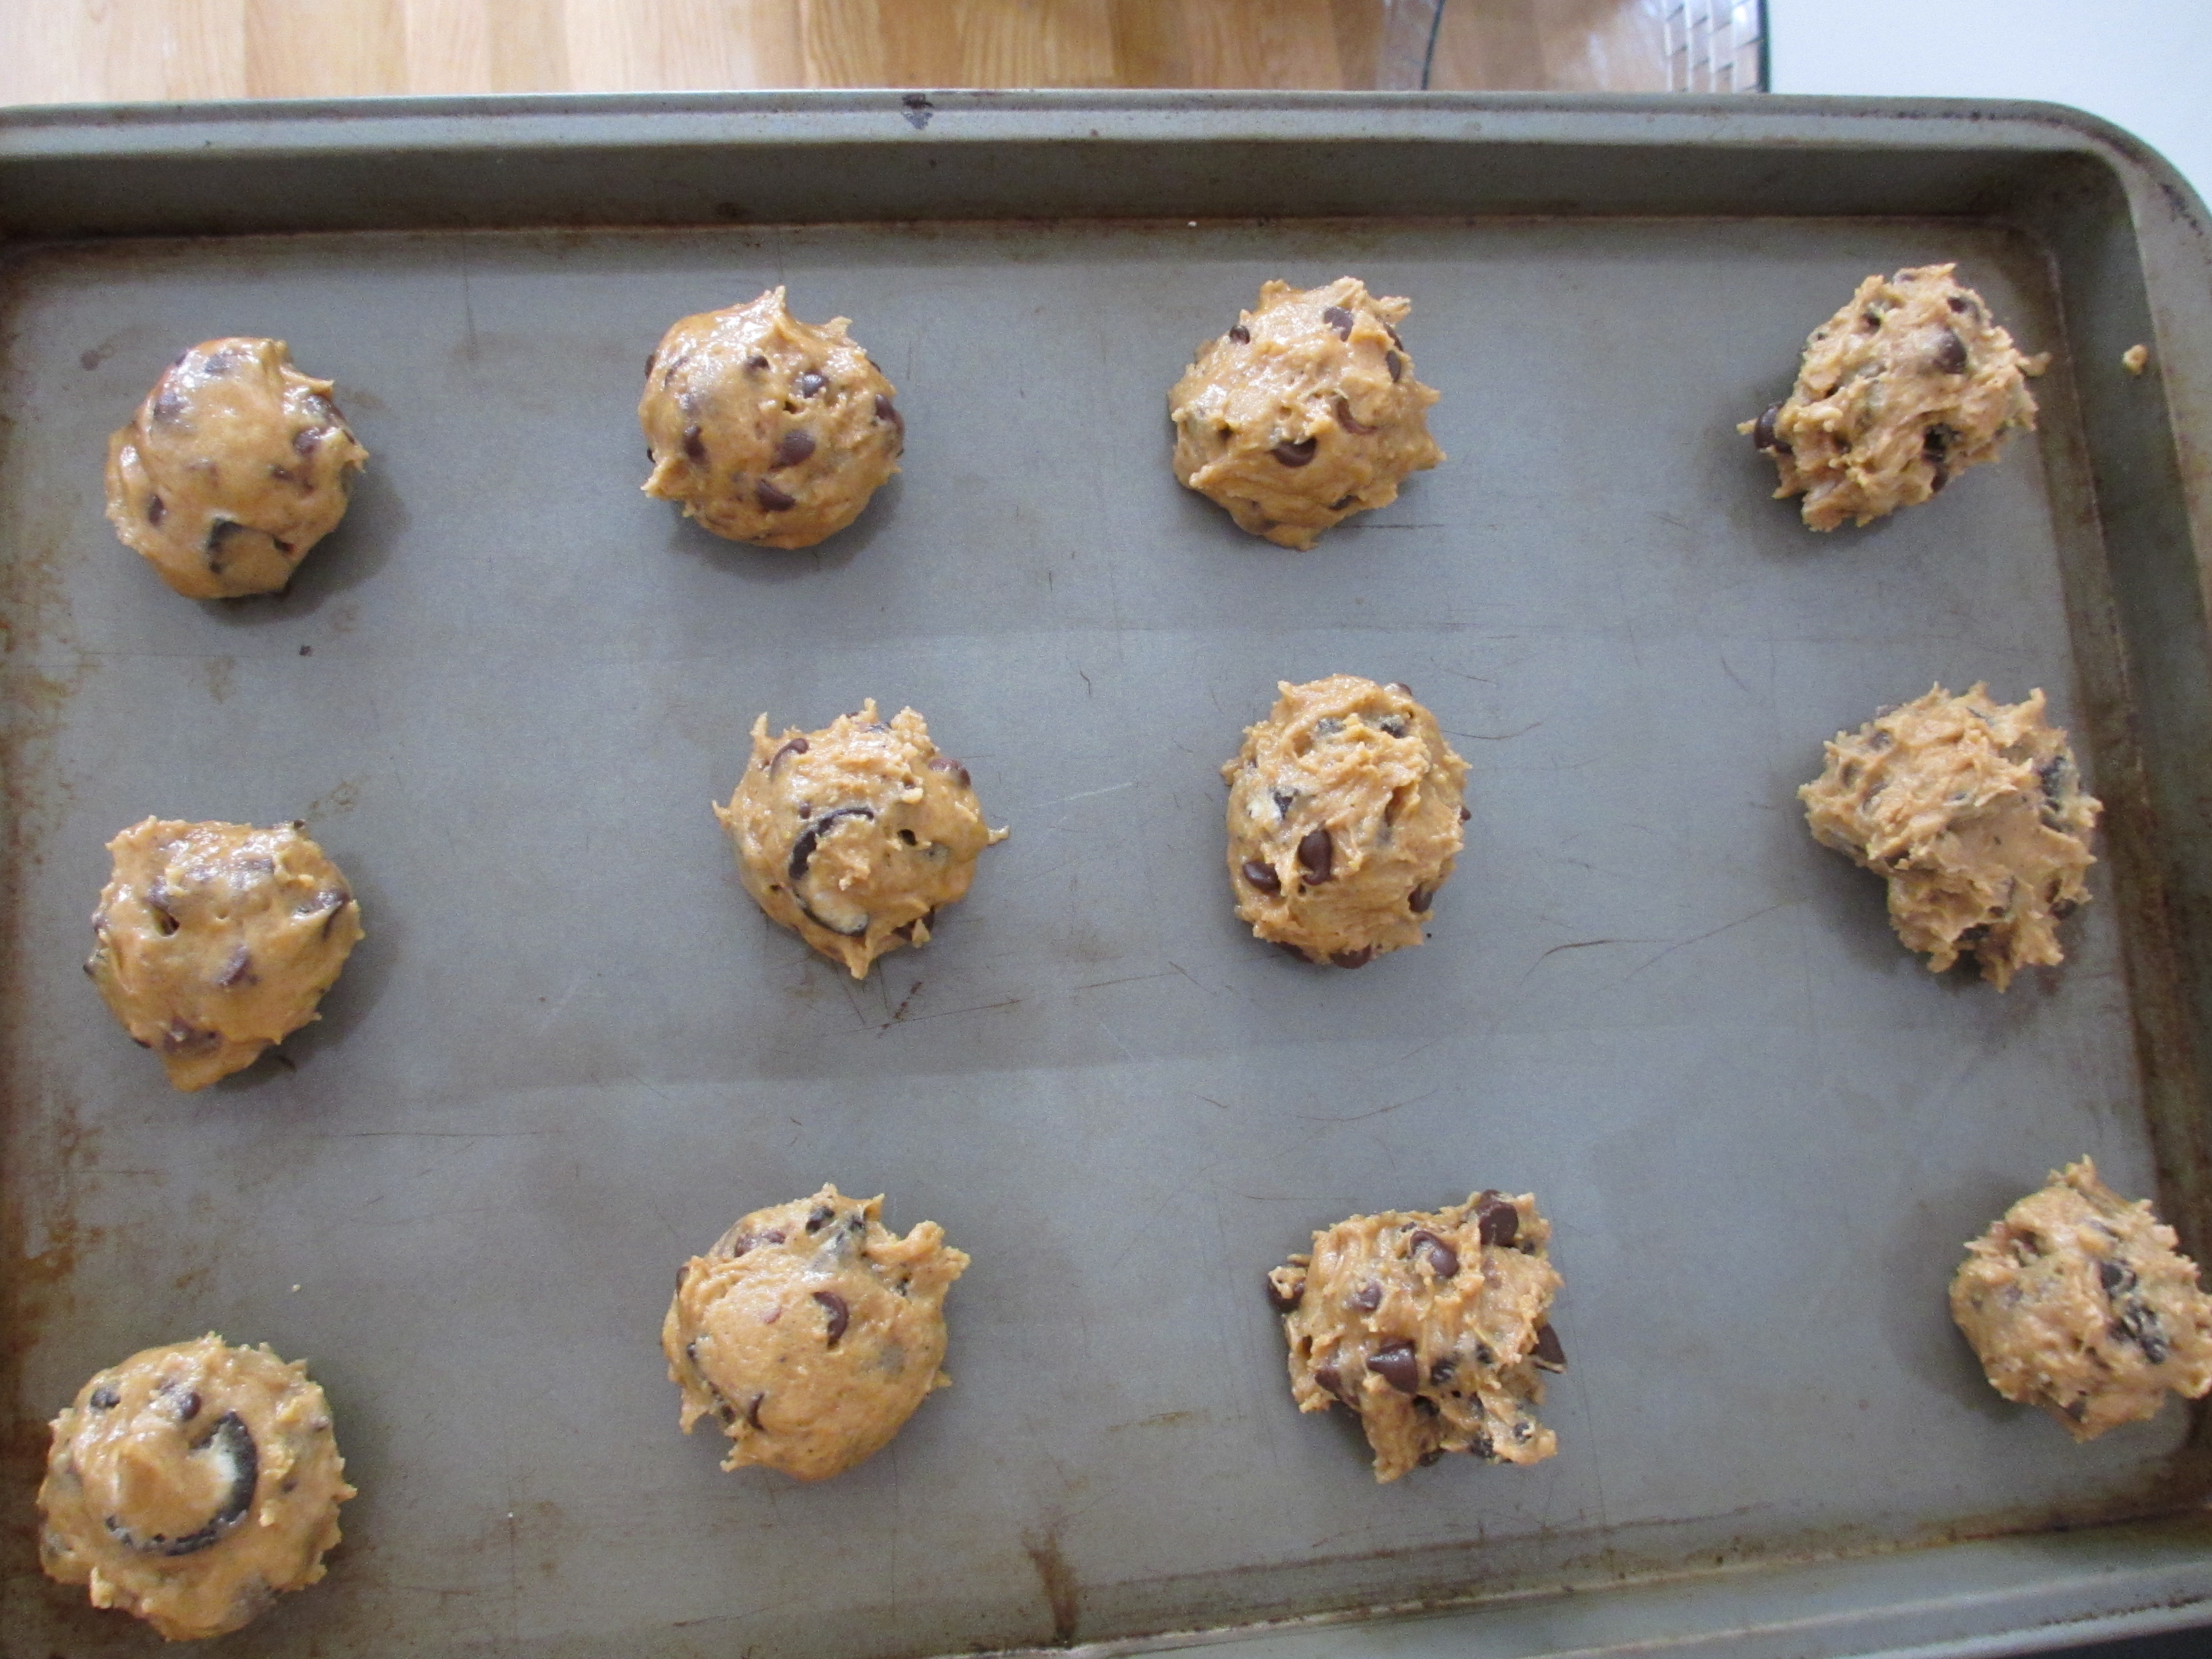 Triple Threat: Oreo's, Snicker's and Chocolate Chip Cookie